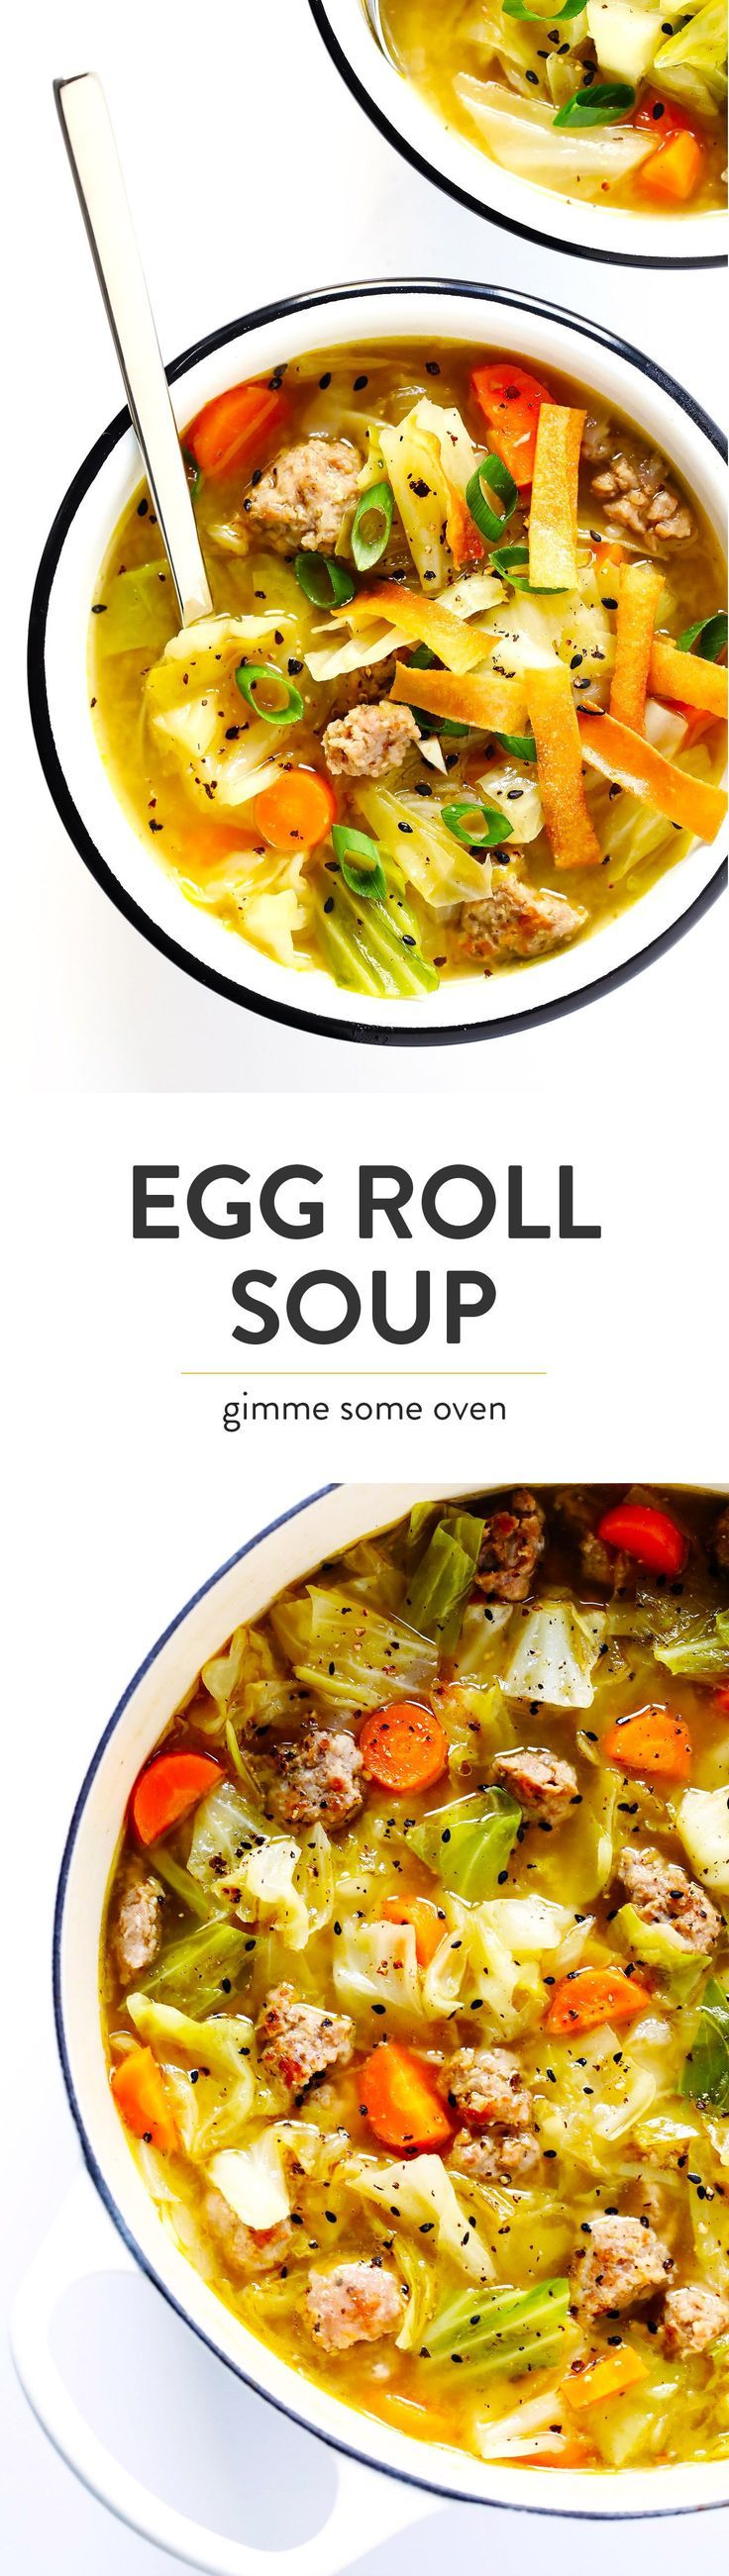 This Egg Roll Soup recipe is SO tasty!! It's basically an Asian cabbage soup. Definitely vegan with tofu or ground soy for me!